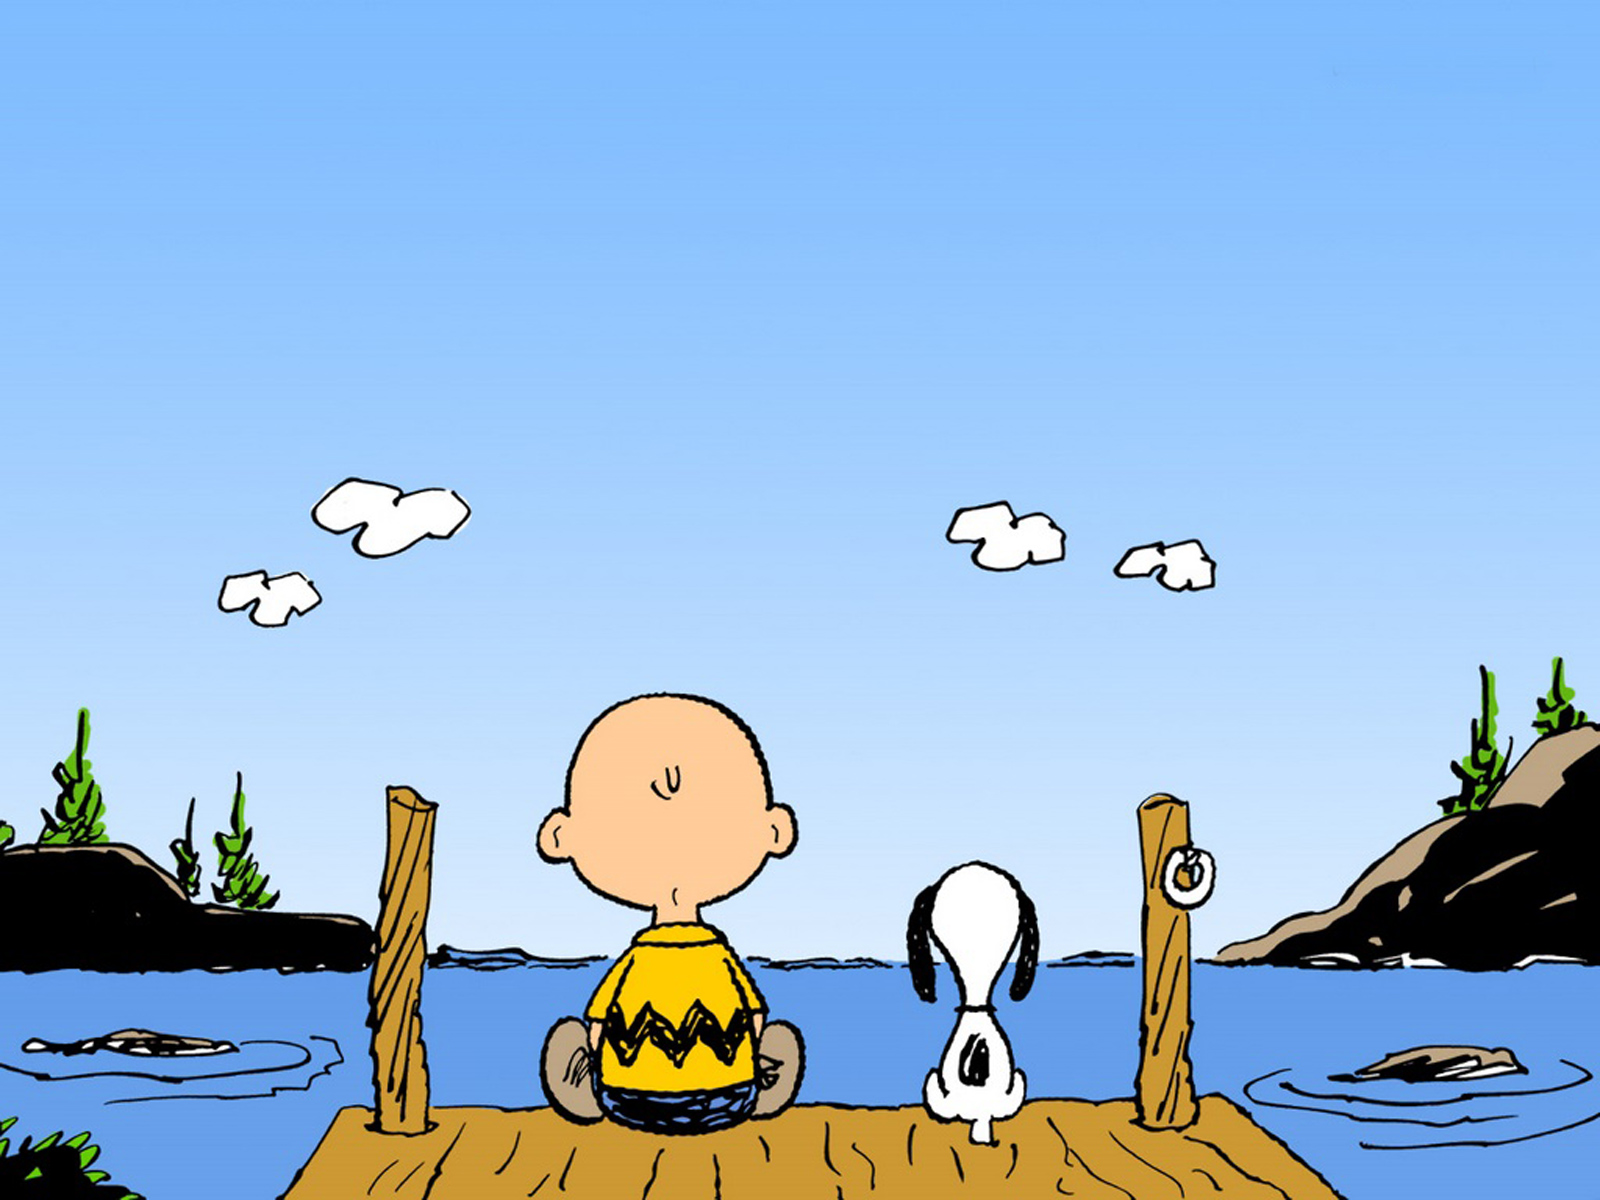 Free Charlie Brown Wallpaper